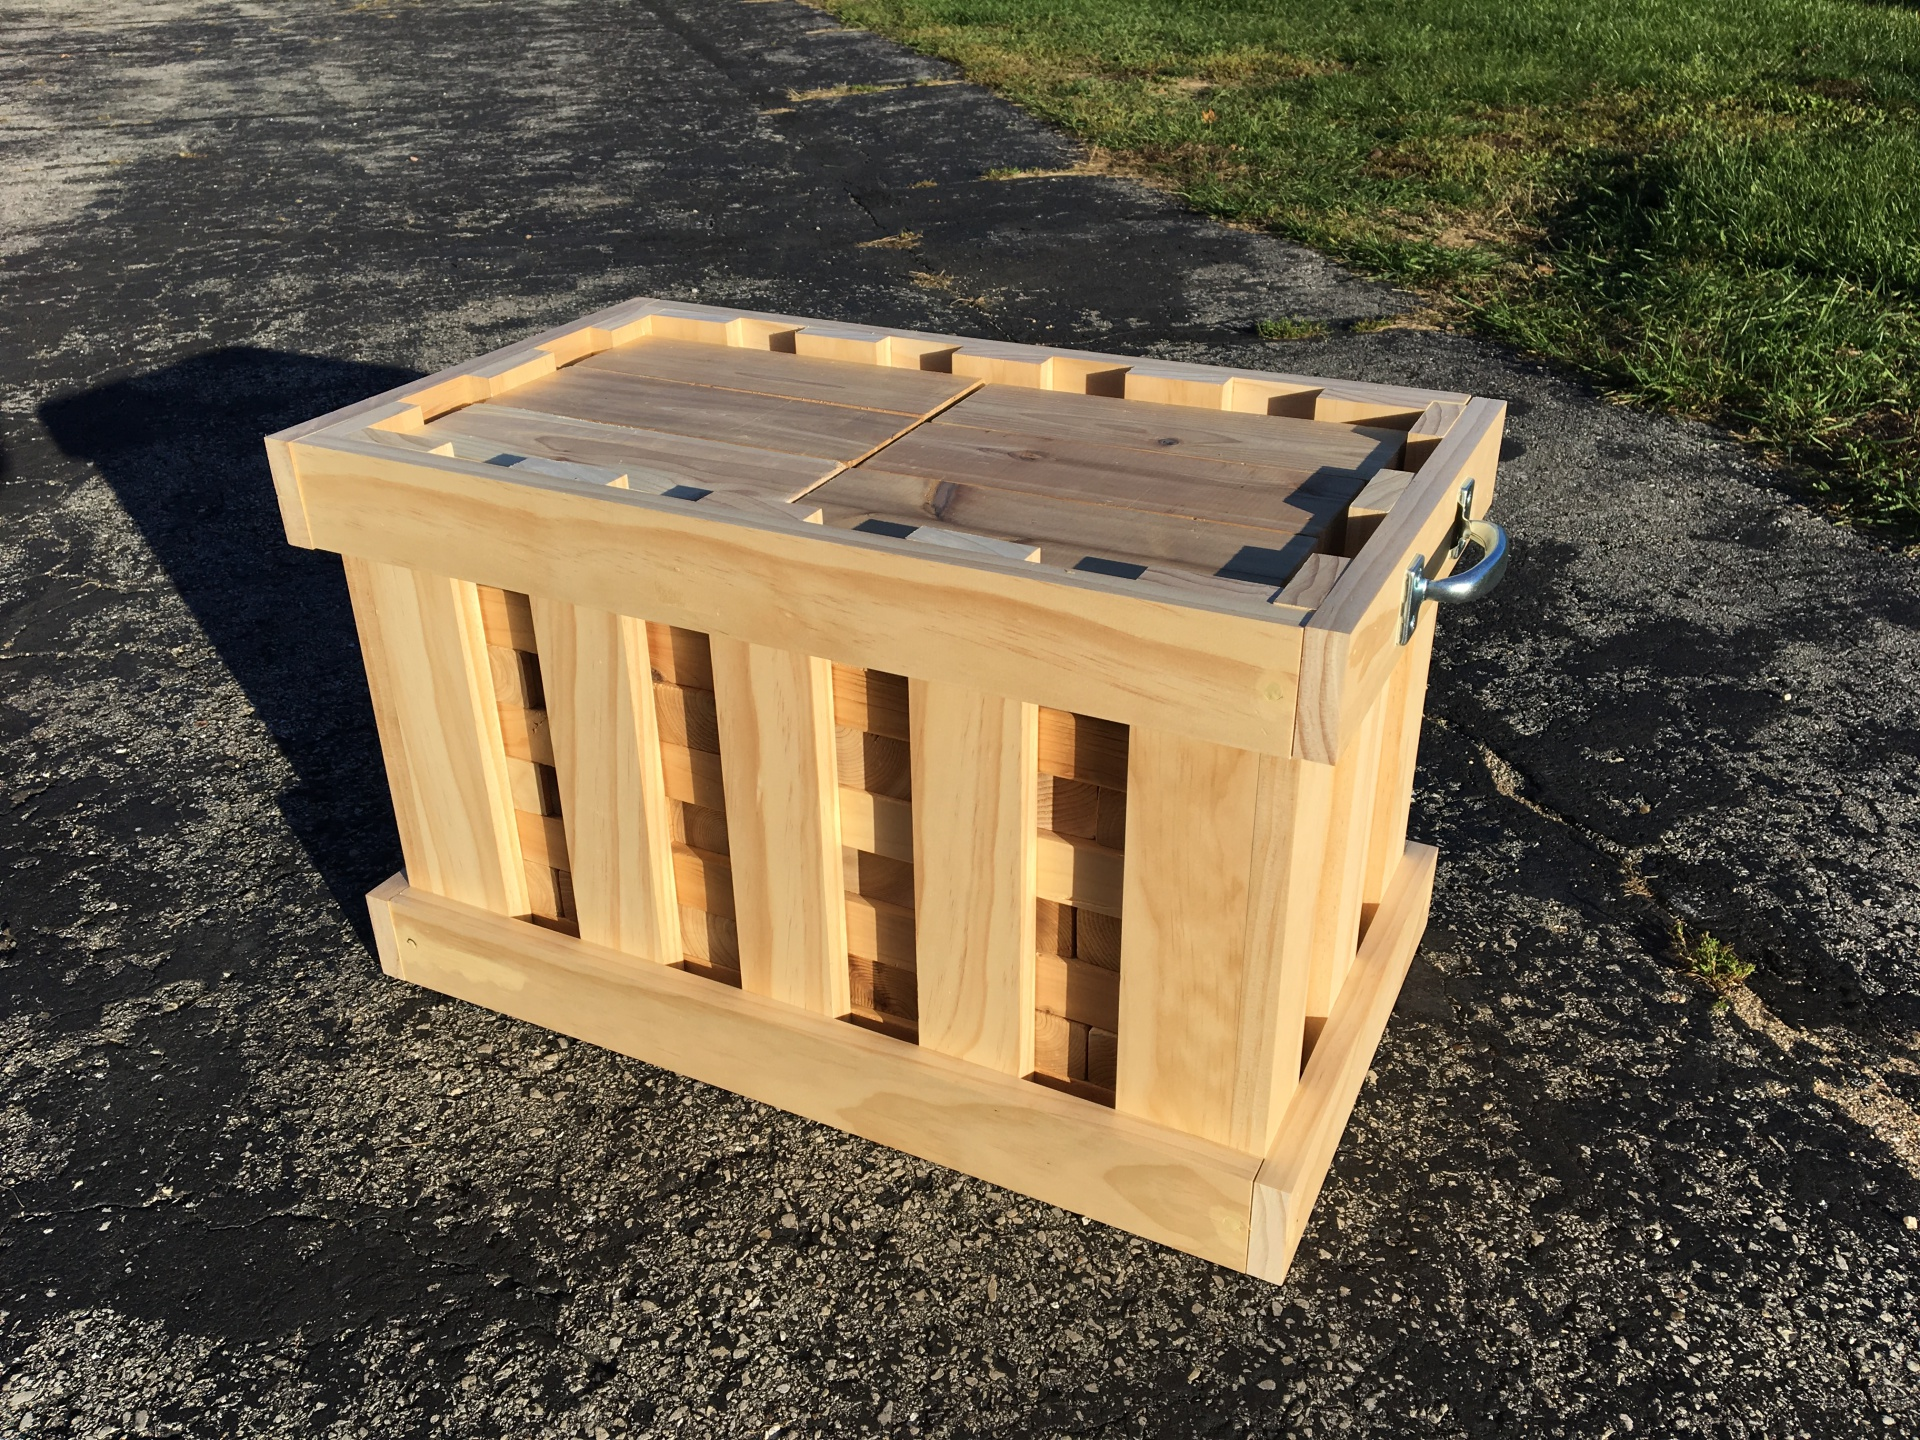 Giant Jenga Carrying Crate